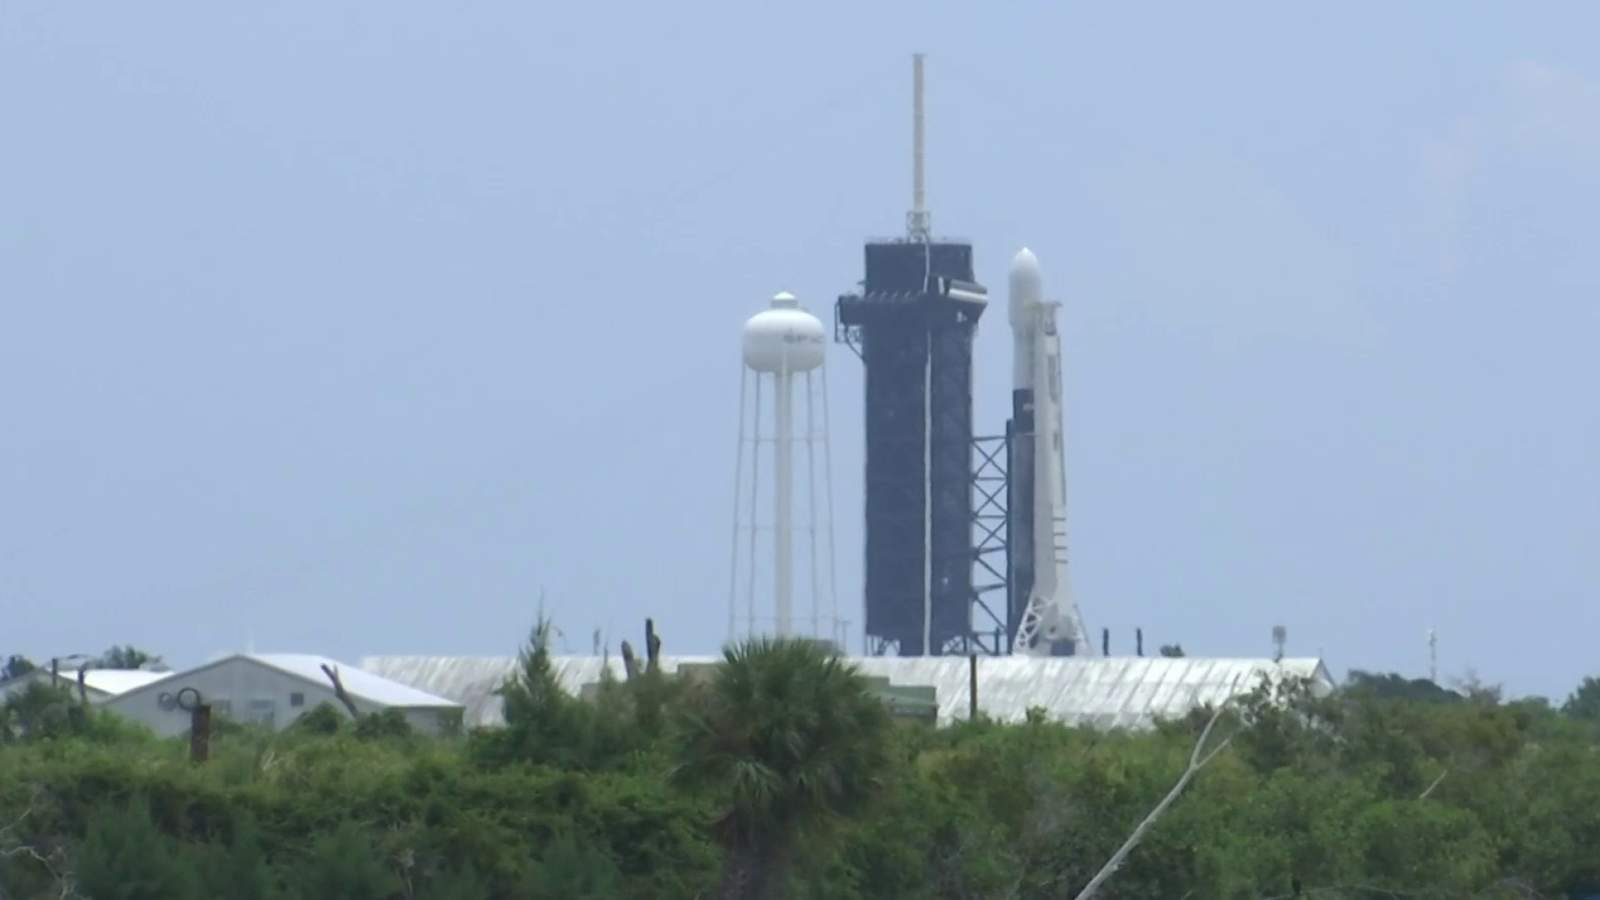 SpaceX's 10th Starlink launch scrubbed, next launch TBD